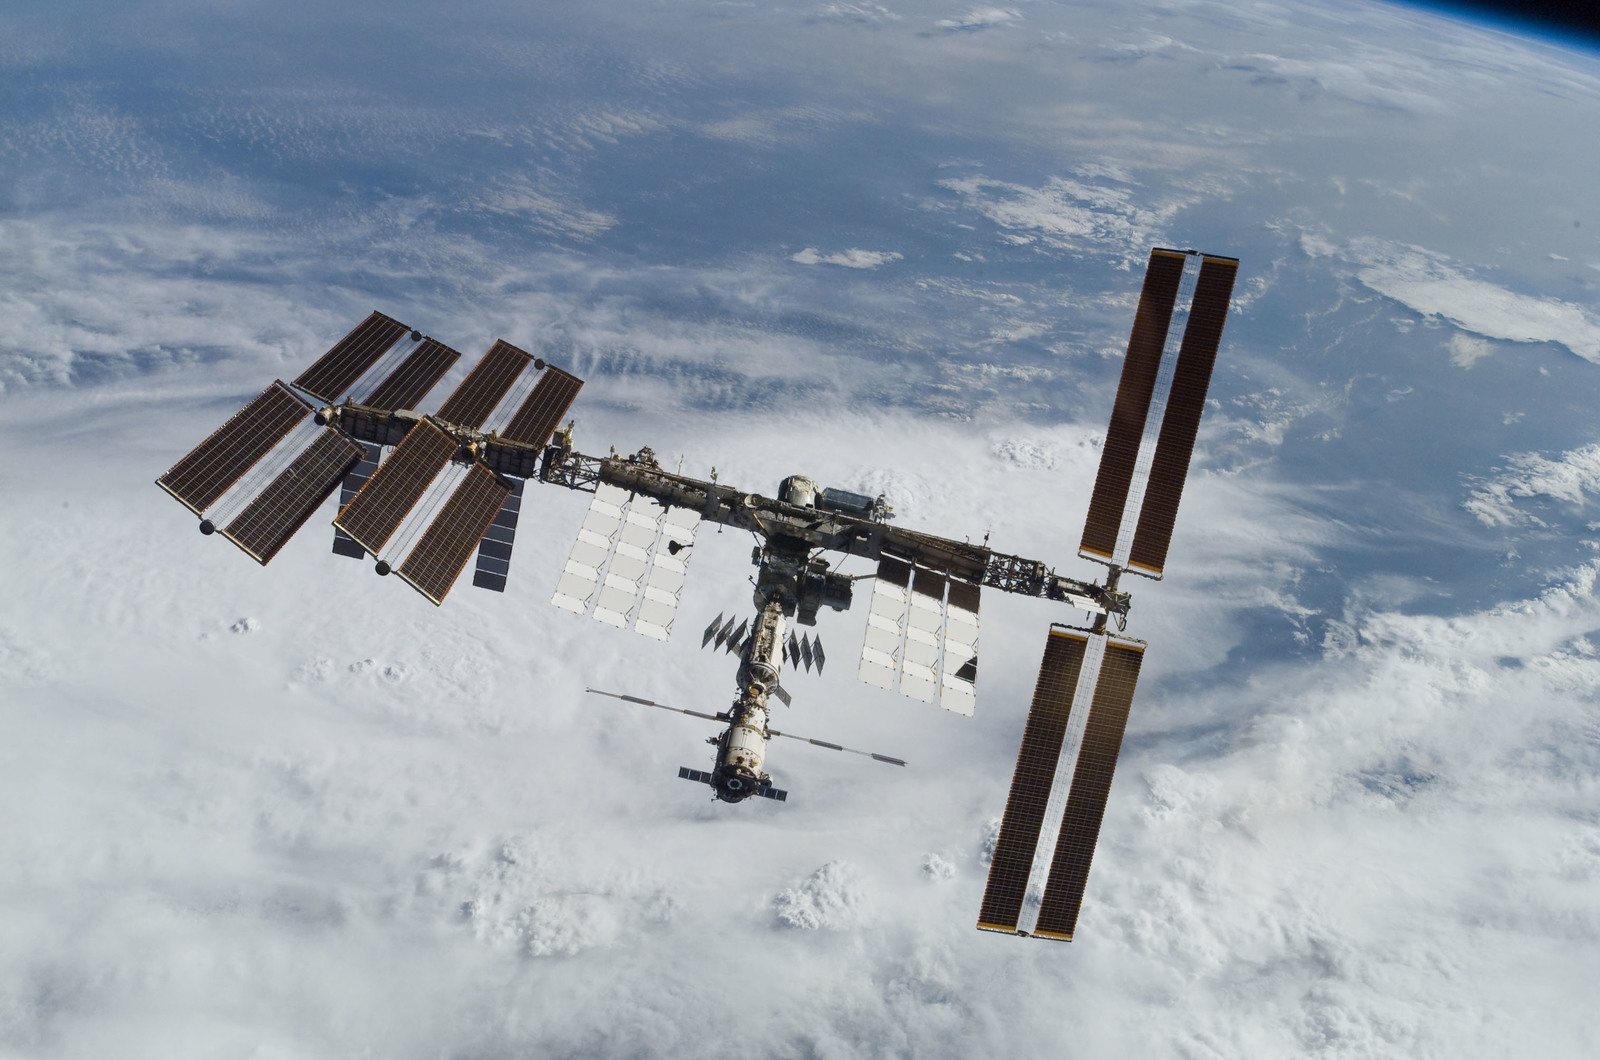 S122E010935 - STS-122 - View of ISS after STS-122 Undocking